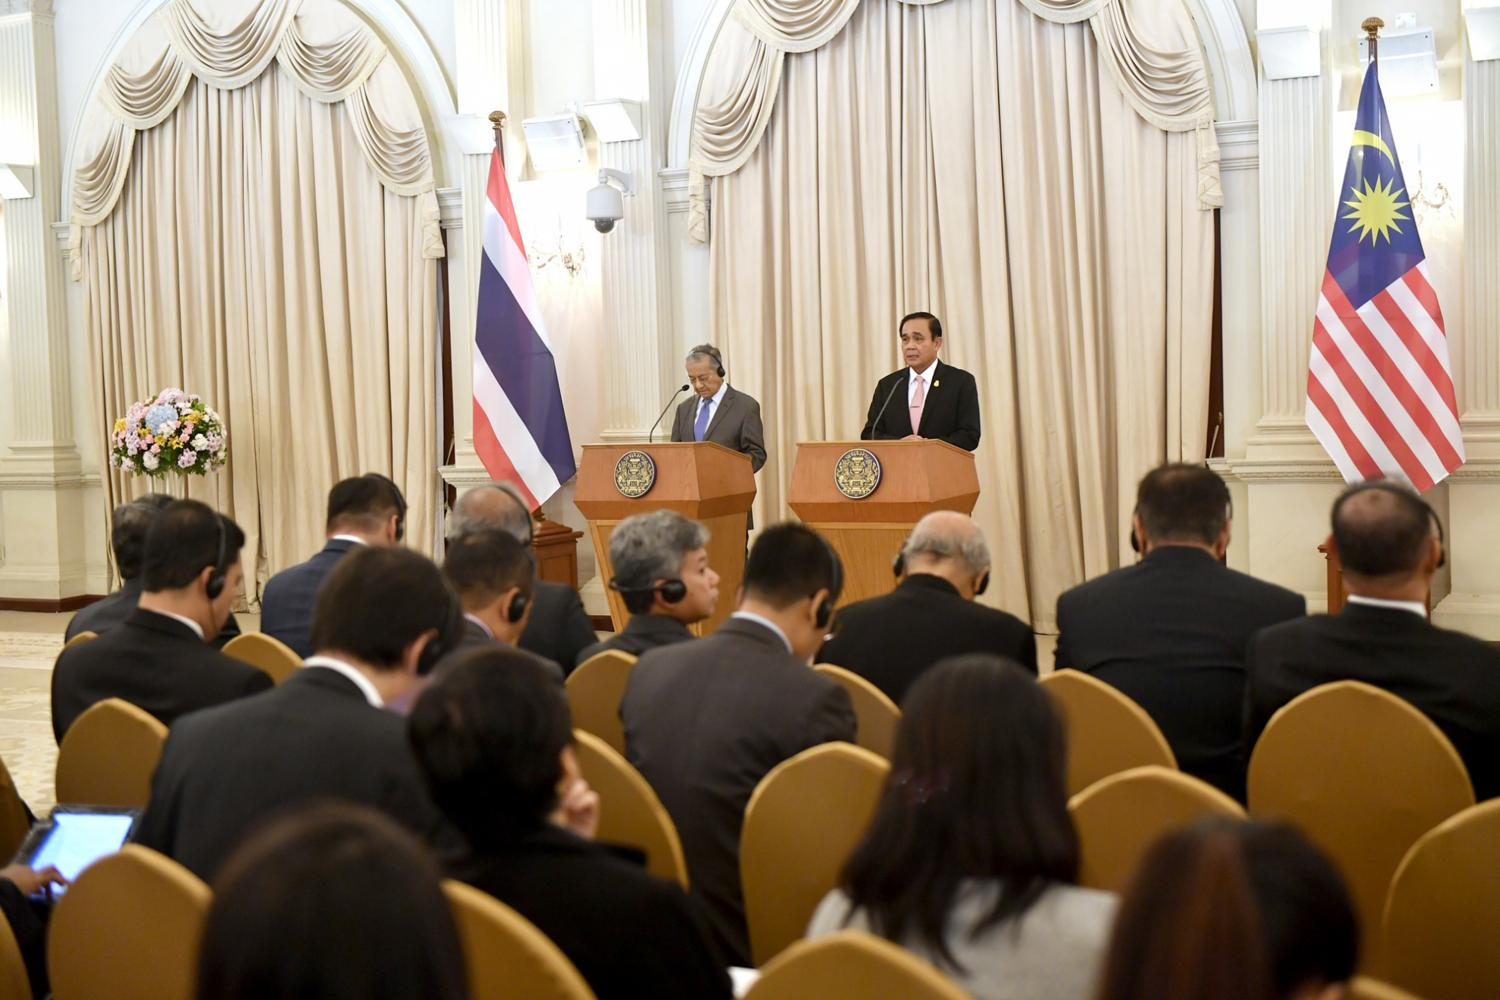 Prime Minister Prayut Chan-o-cha and his Malaysian counterpart Mahathir Mohammad give a joint press conference at Thailand's Government House on Oct 23 last year.(Picture courtesy of Government House)